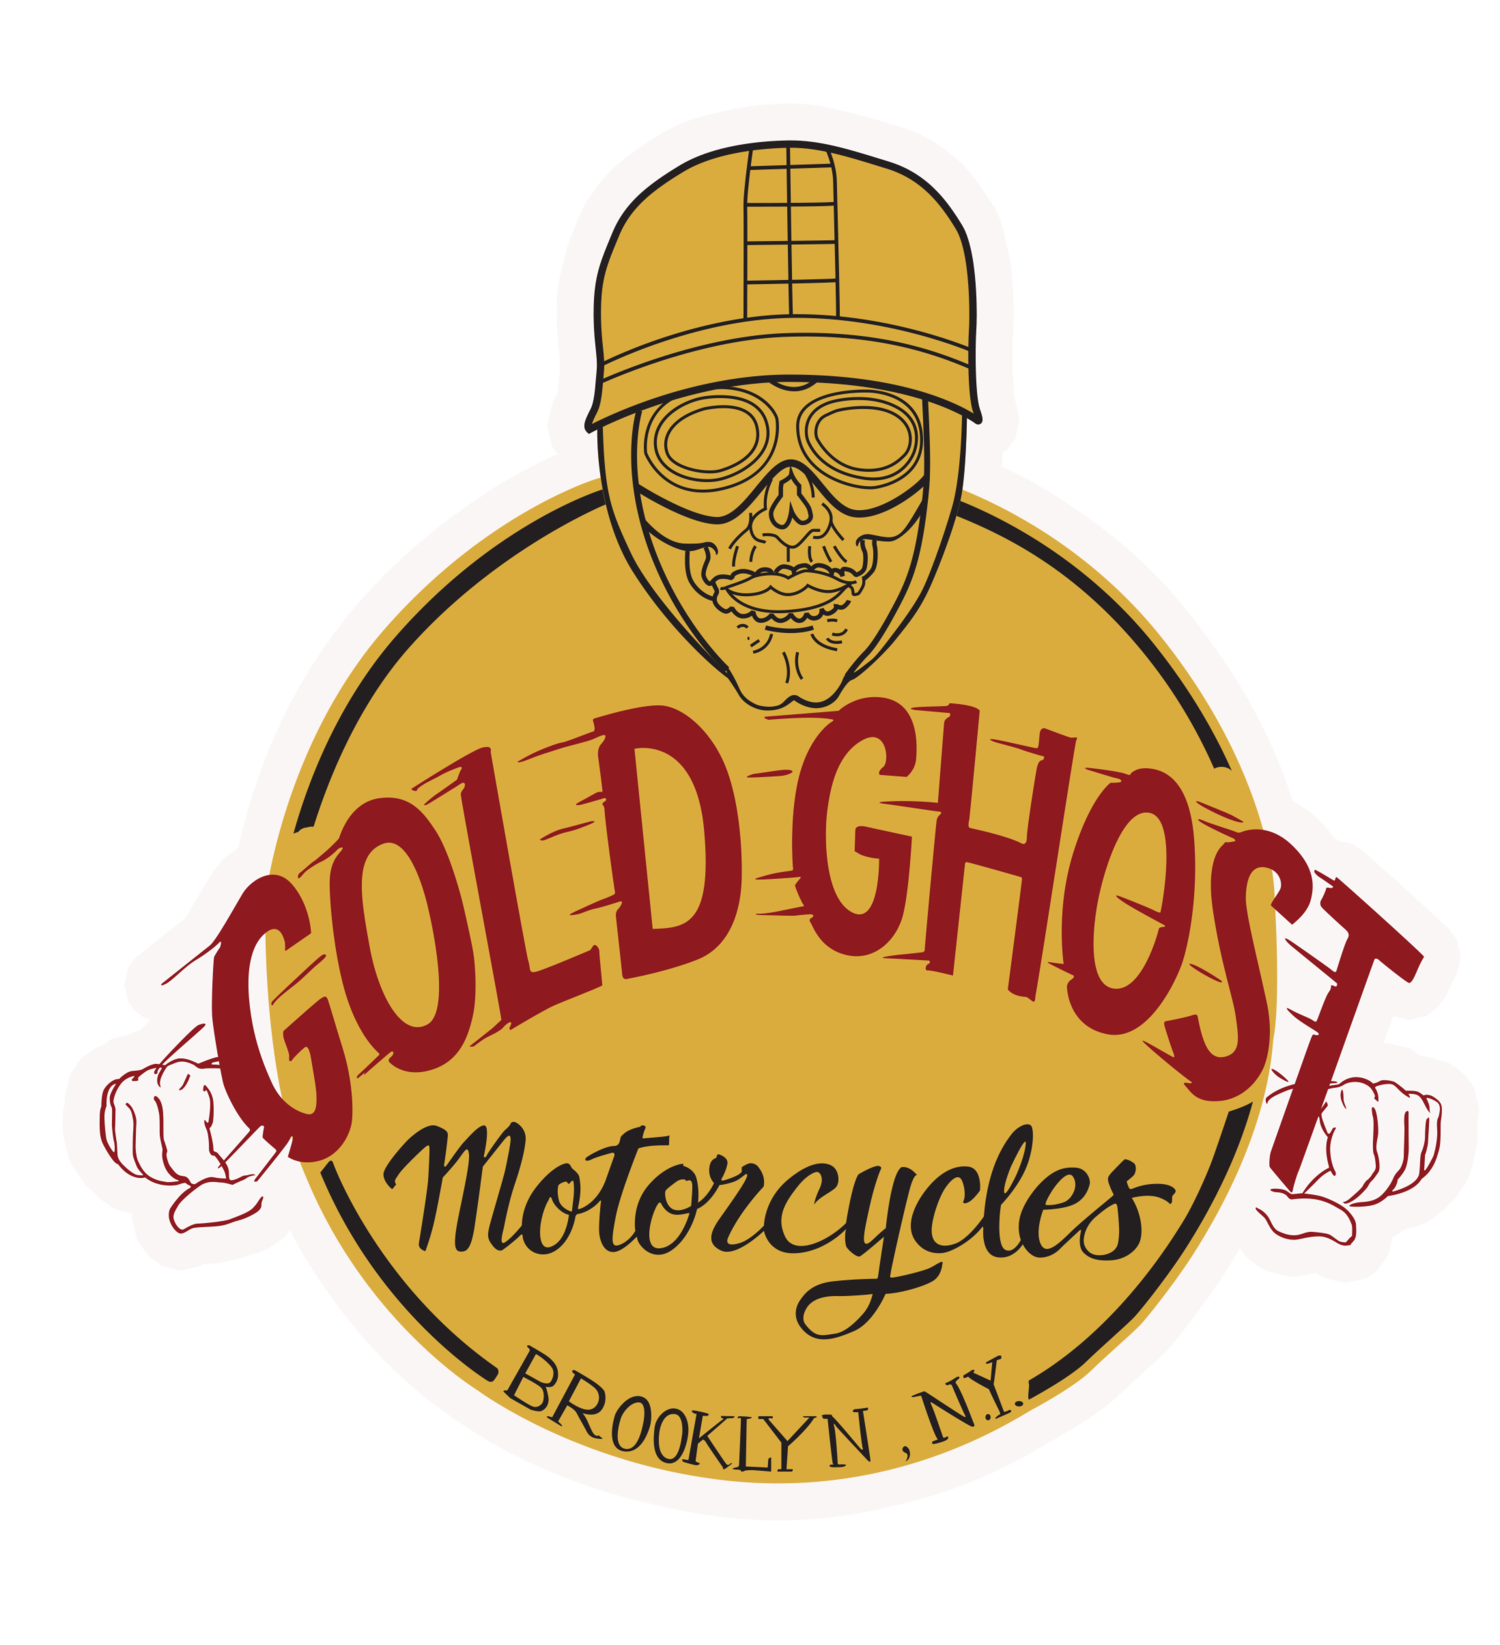 Gold Ghost Motorcycles